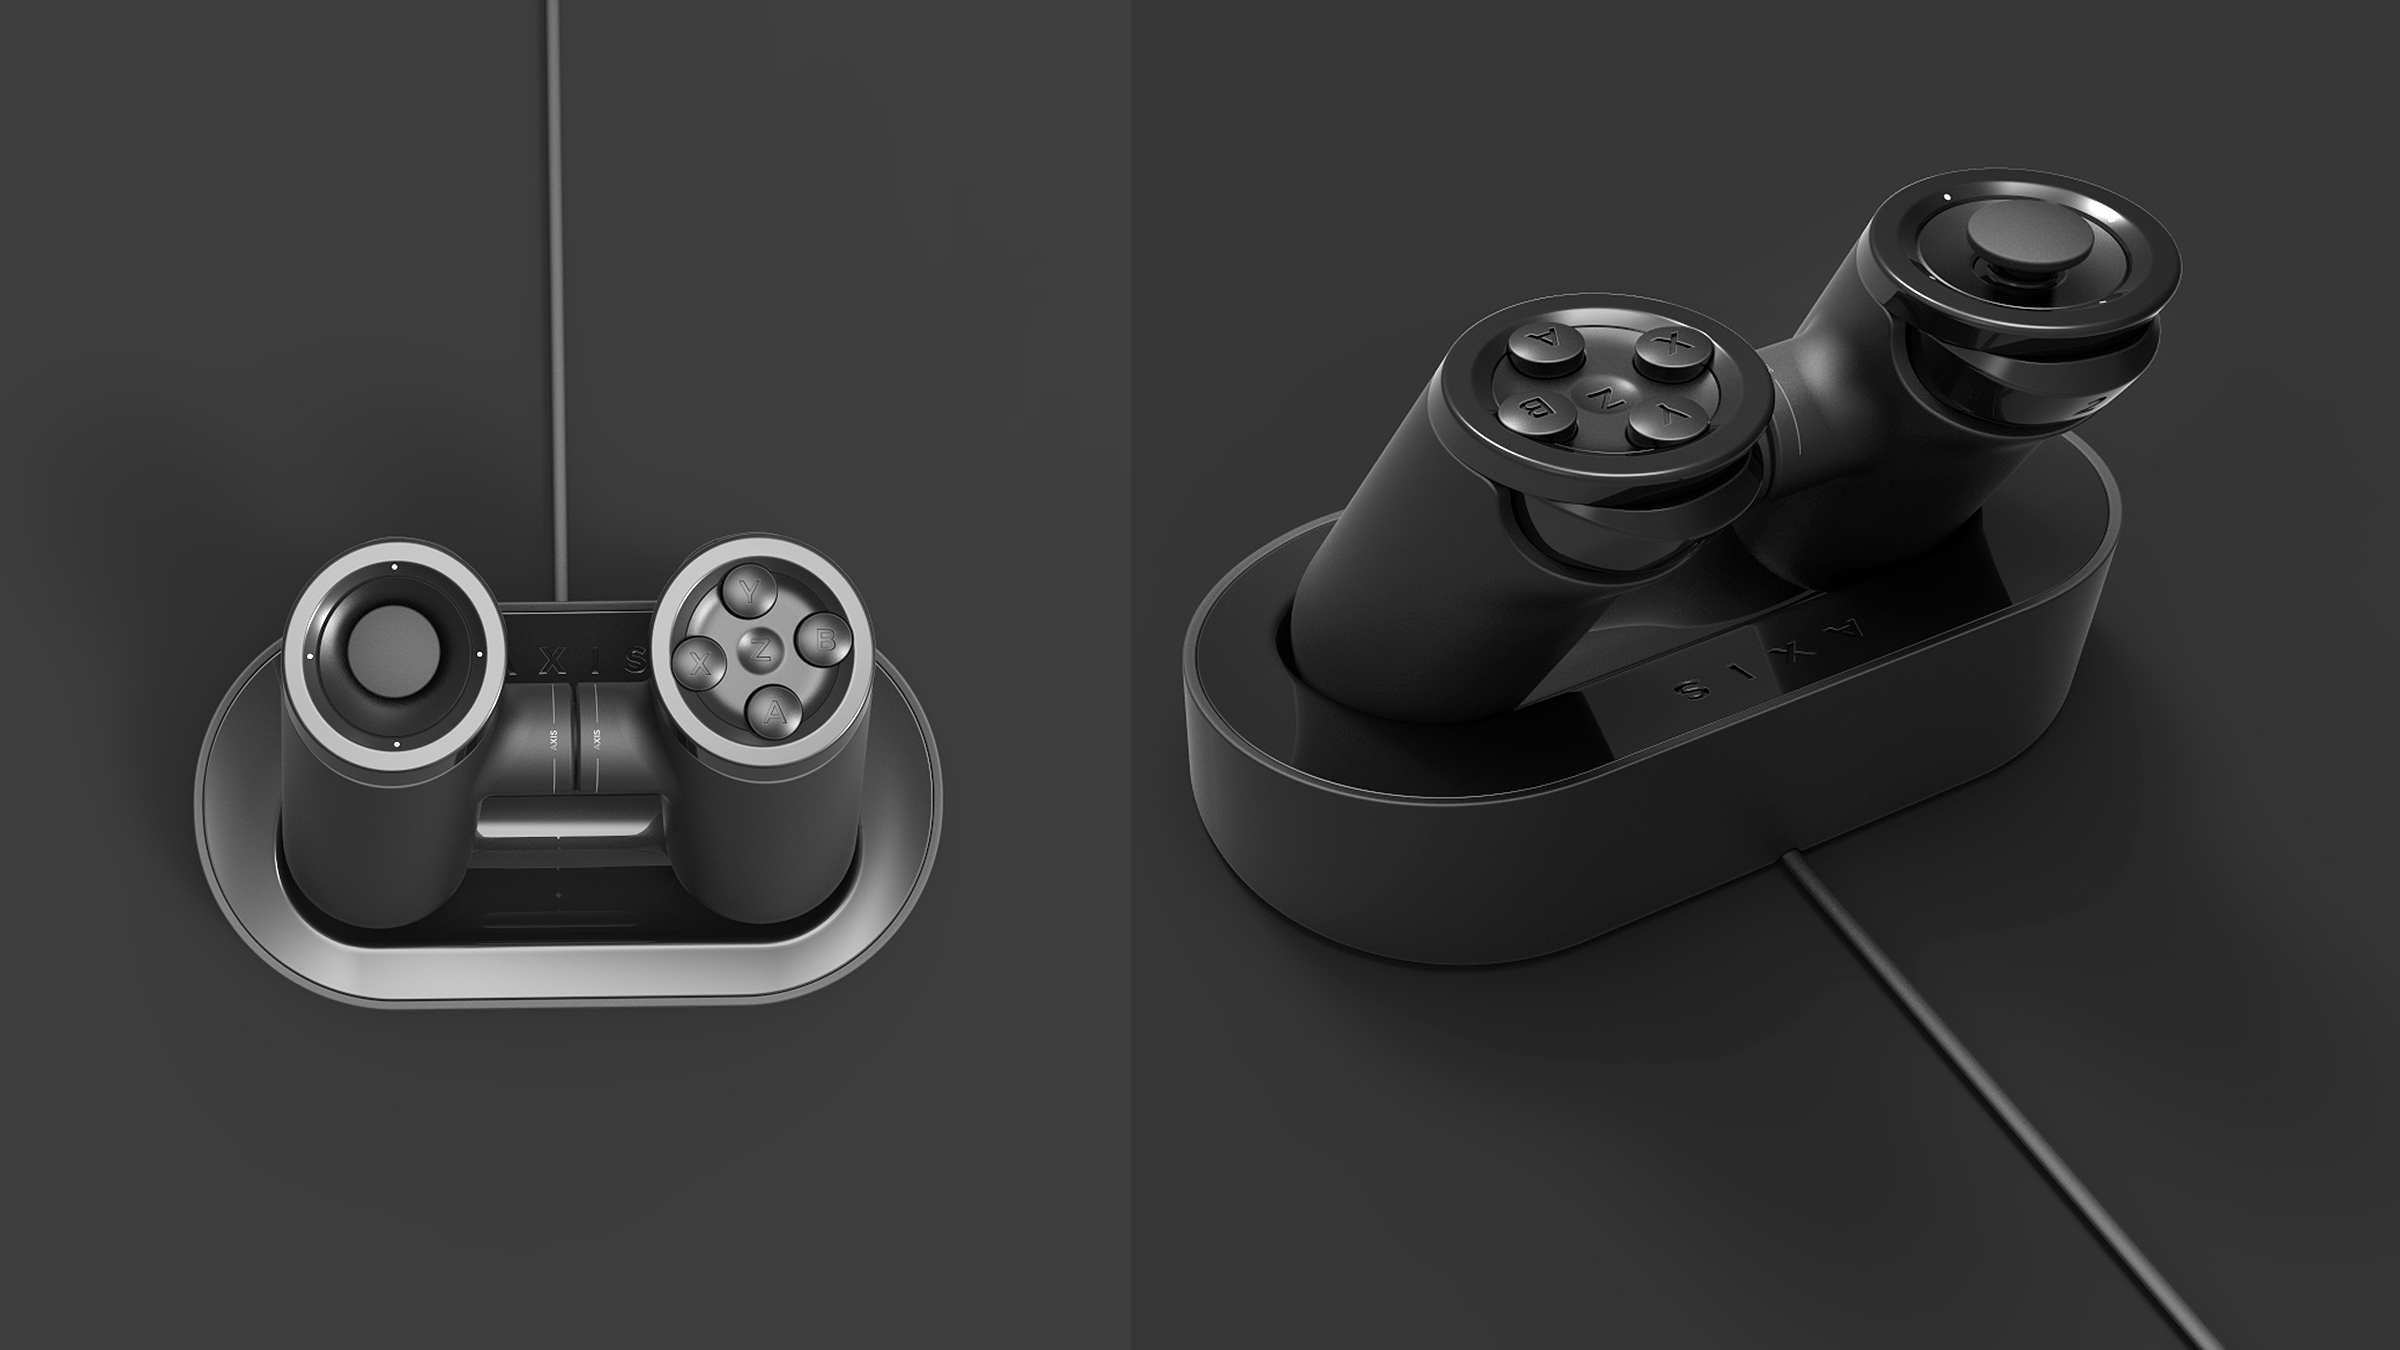 Charging dock top and rear view. Copyright Creative Session